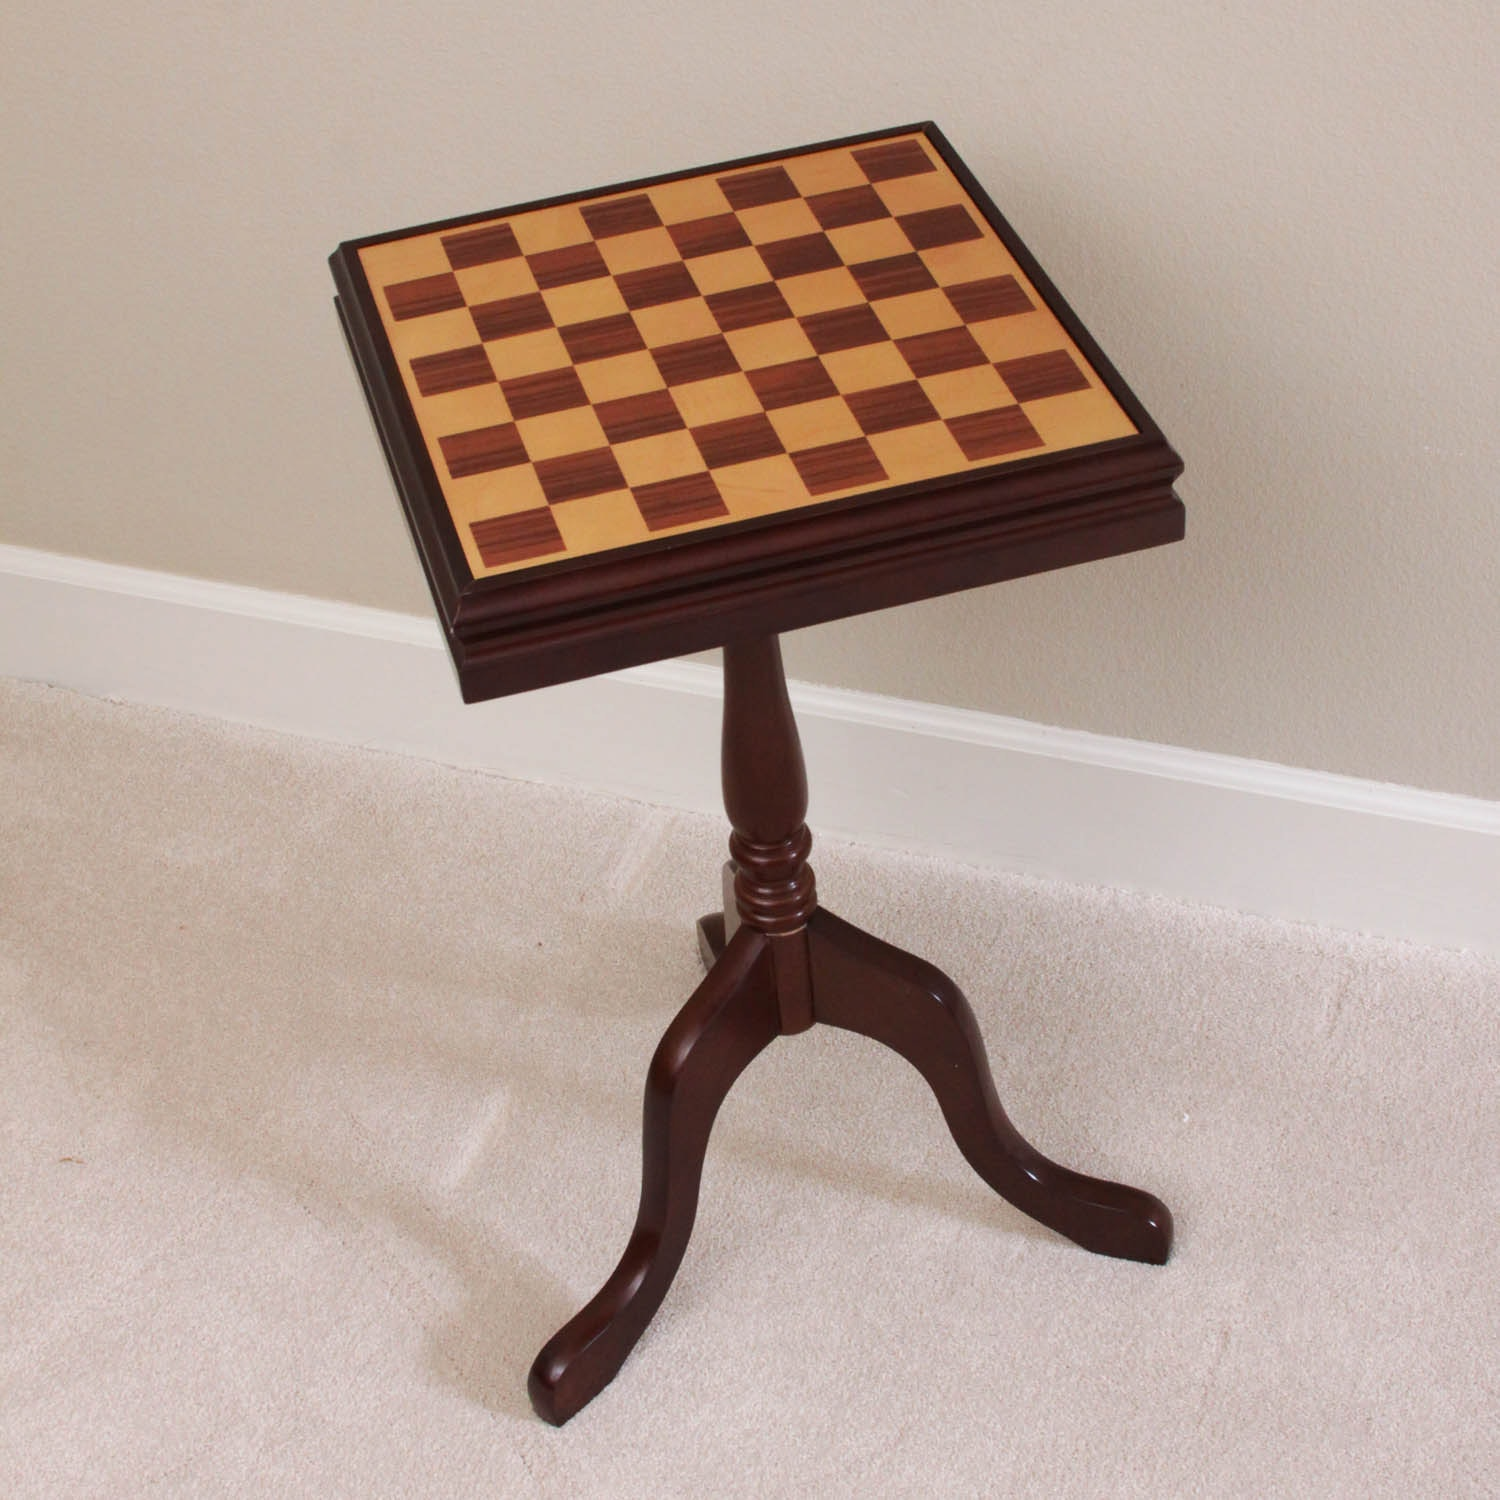 Wooden Chess Table By The Bombay Company ...